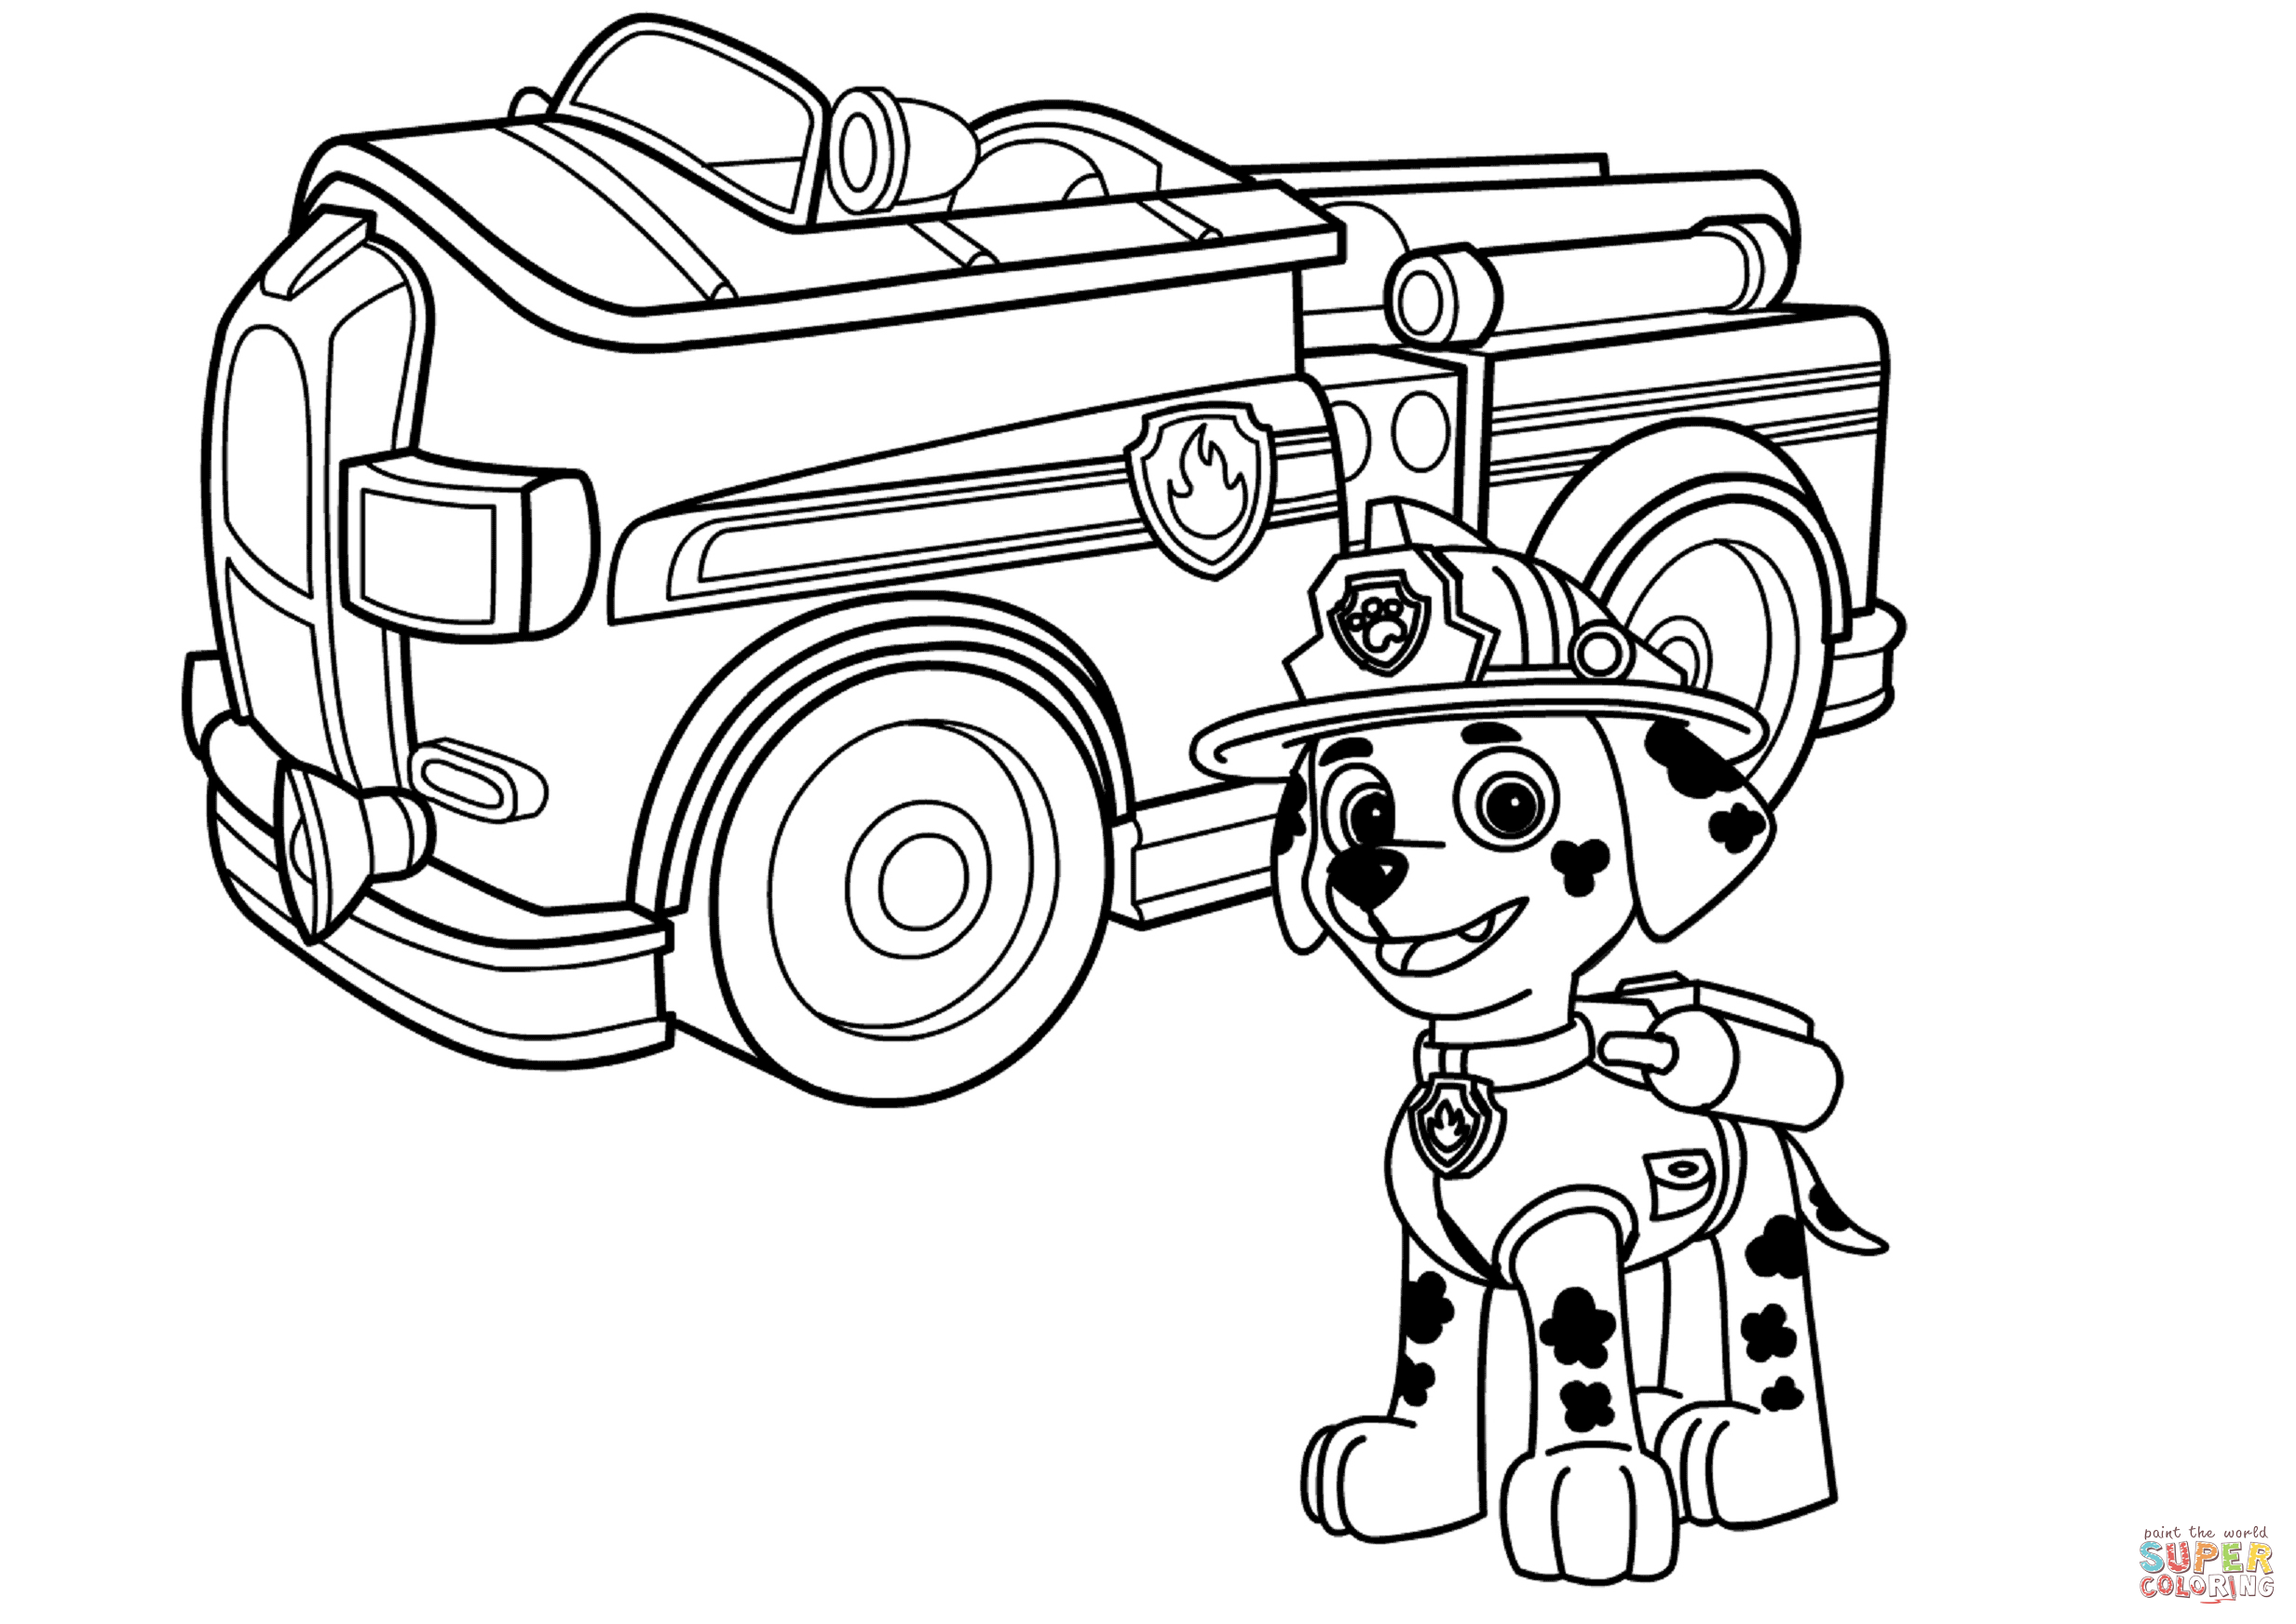 image result for free printable paw patrol coloring pages paw patrol pinterest paw patrol free printable and cricut